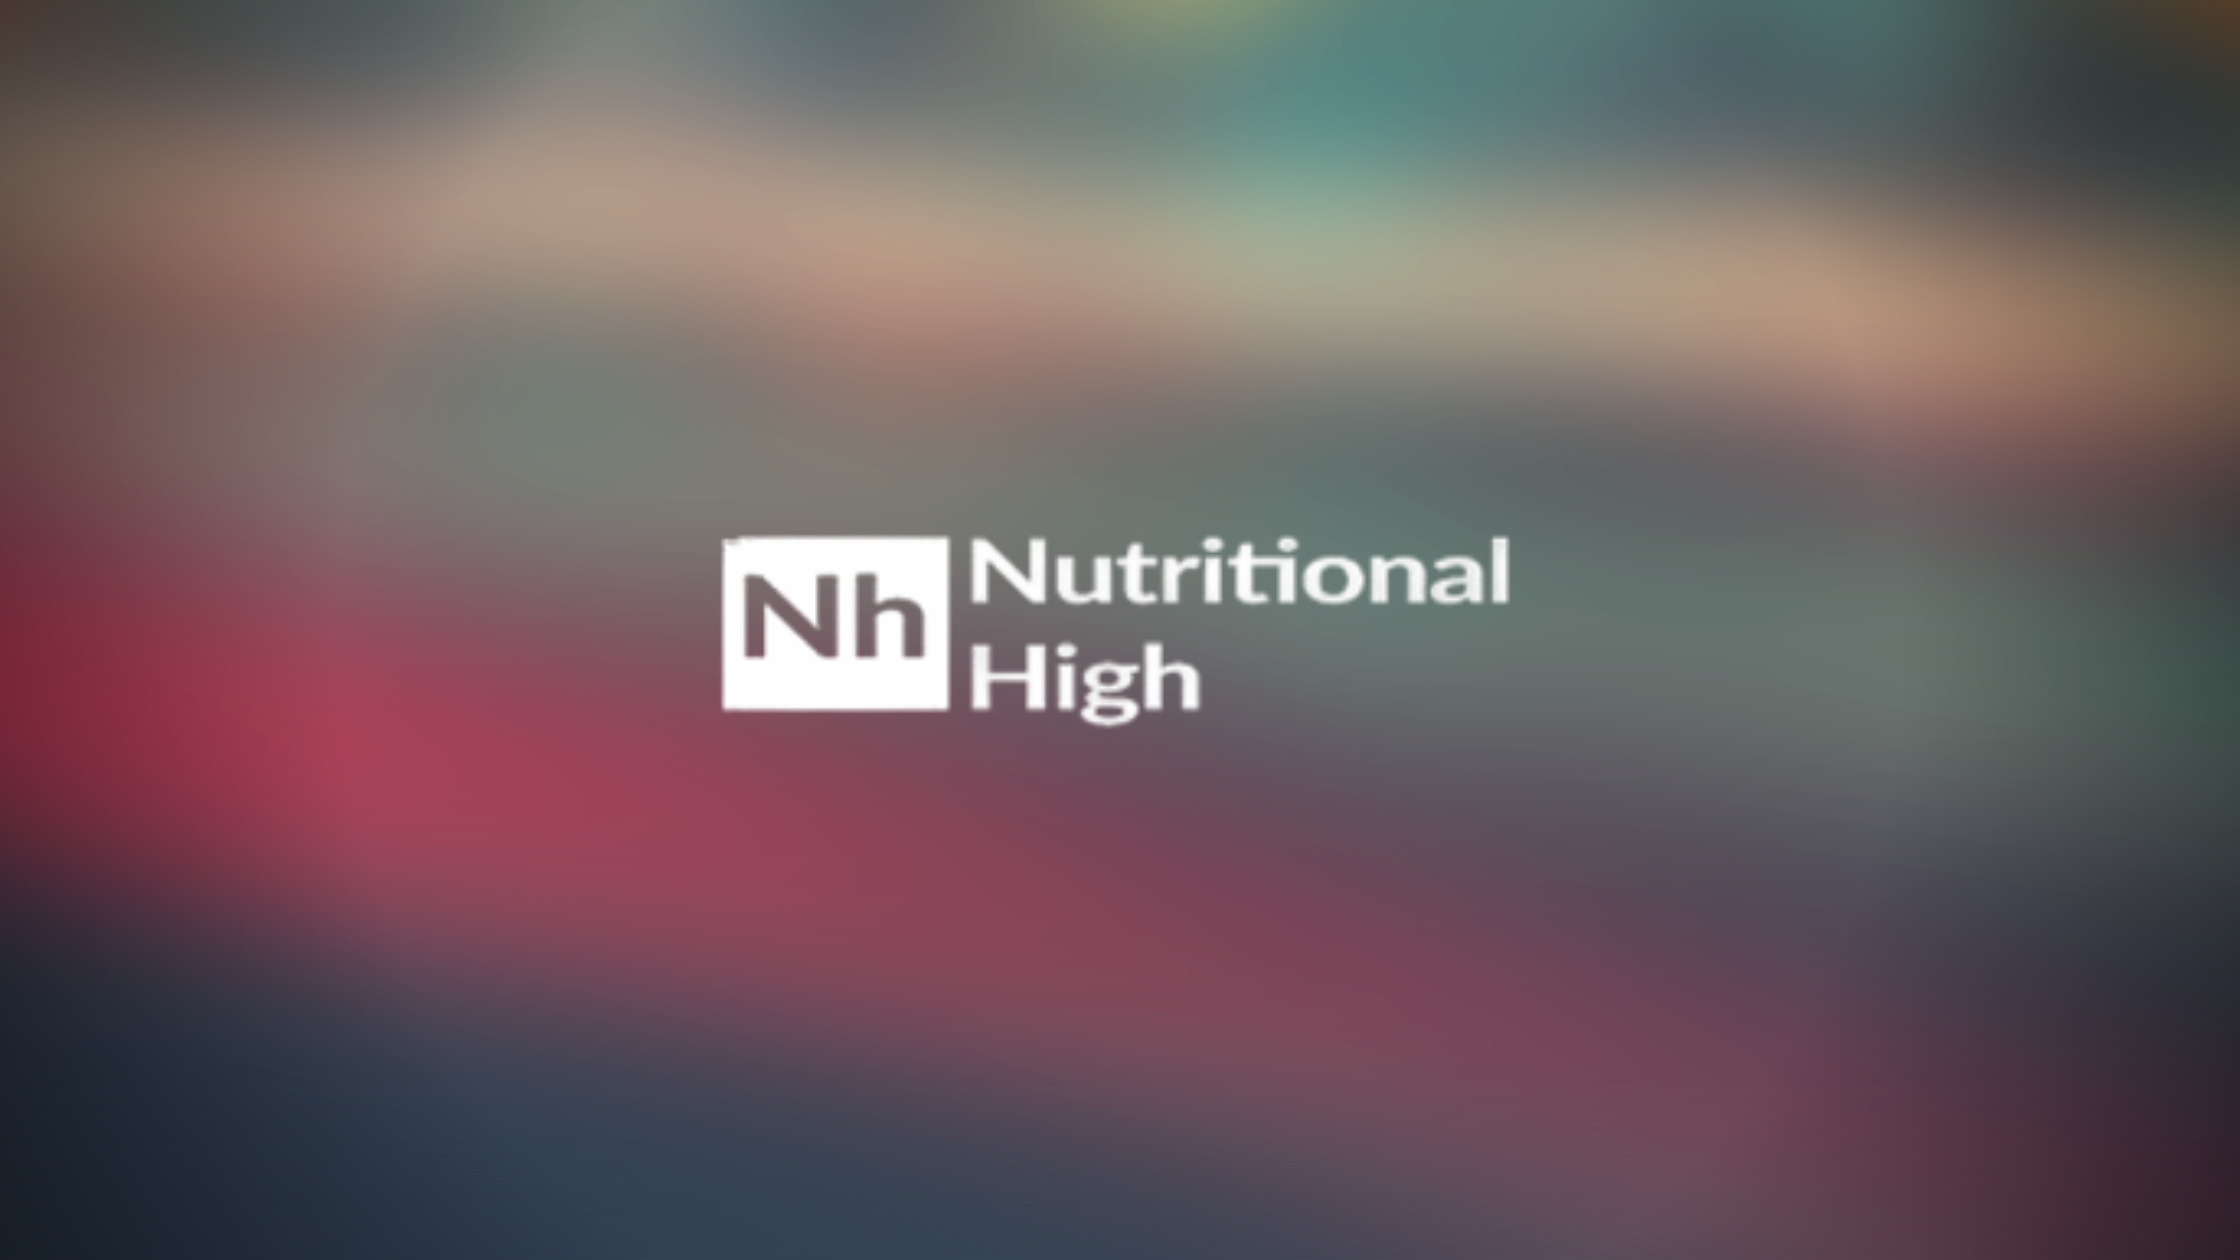 Nutritional High Stock